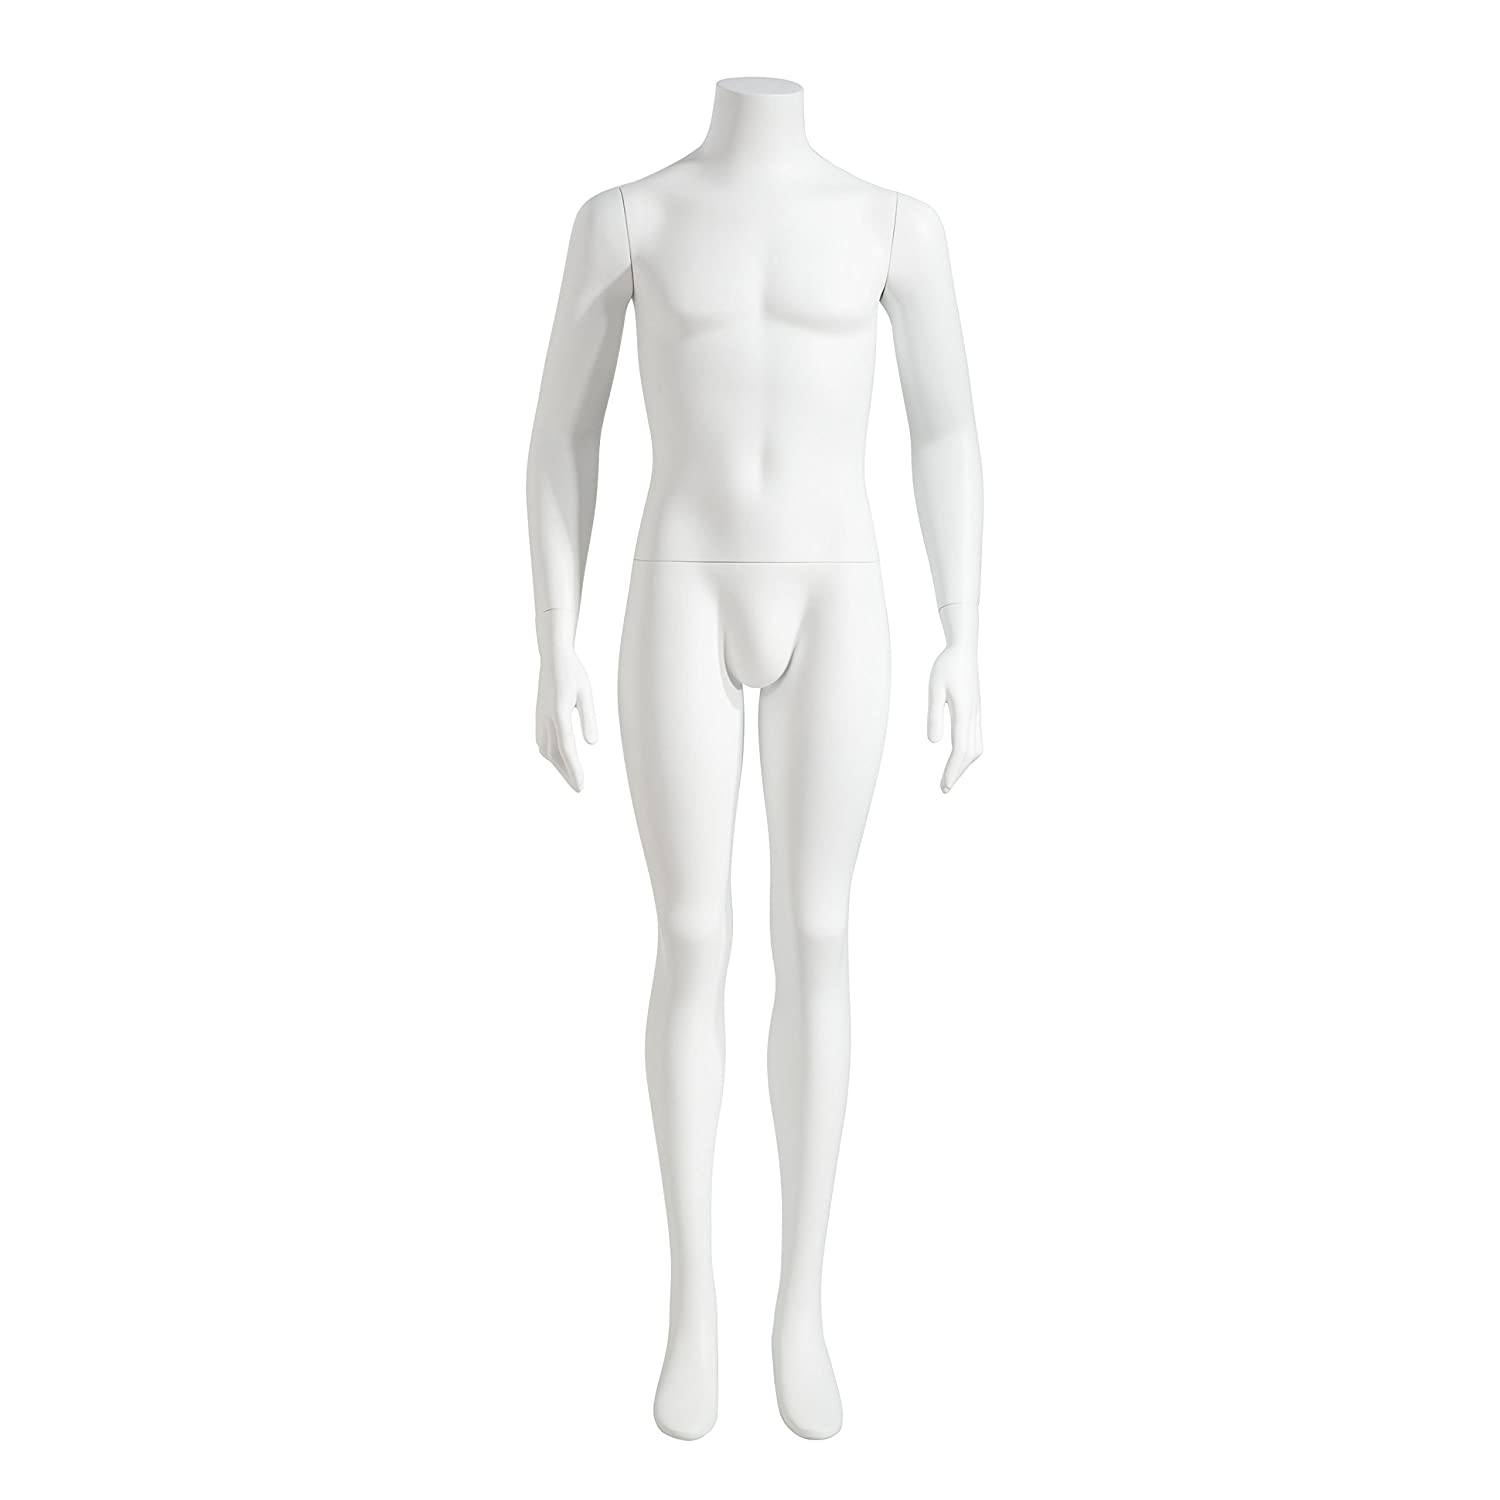 Male torso headless mannequin linen with adjustable stand EUC